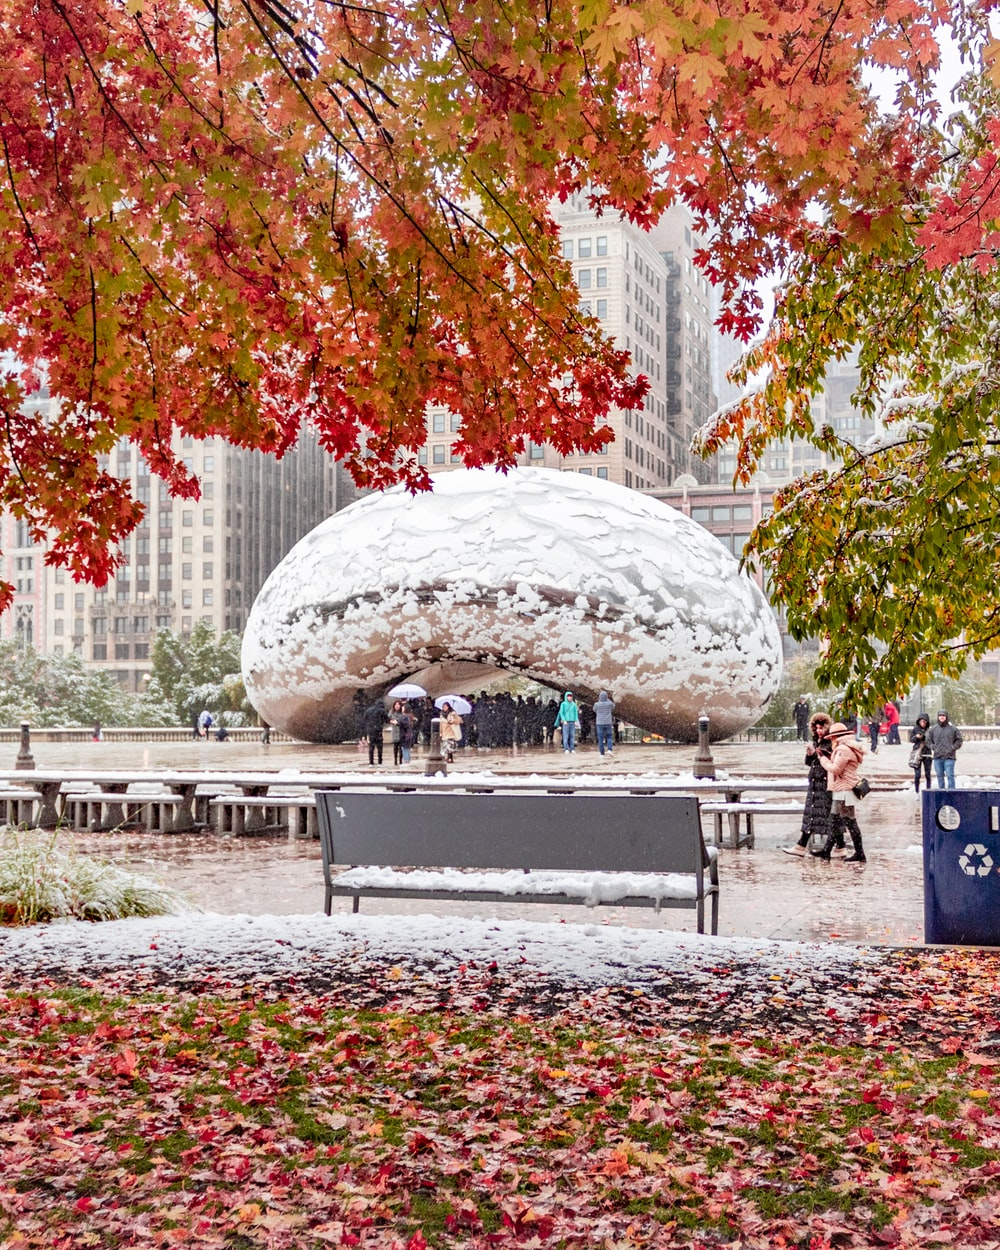 Cloudgate, Chicago during daytime